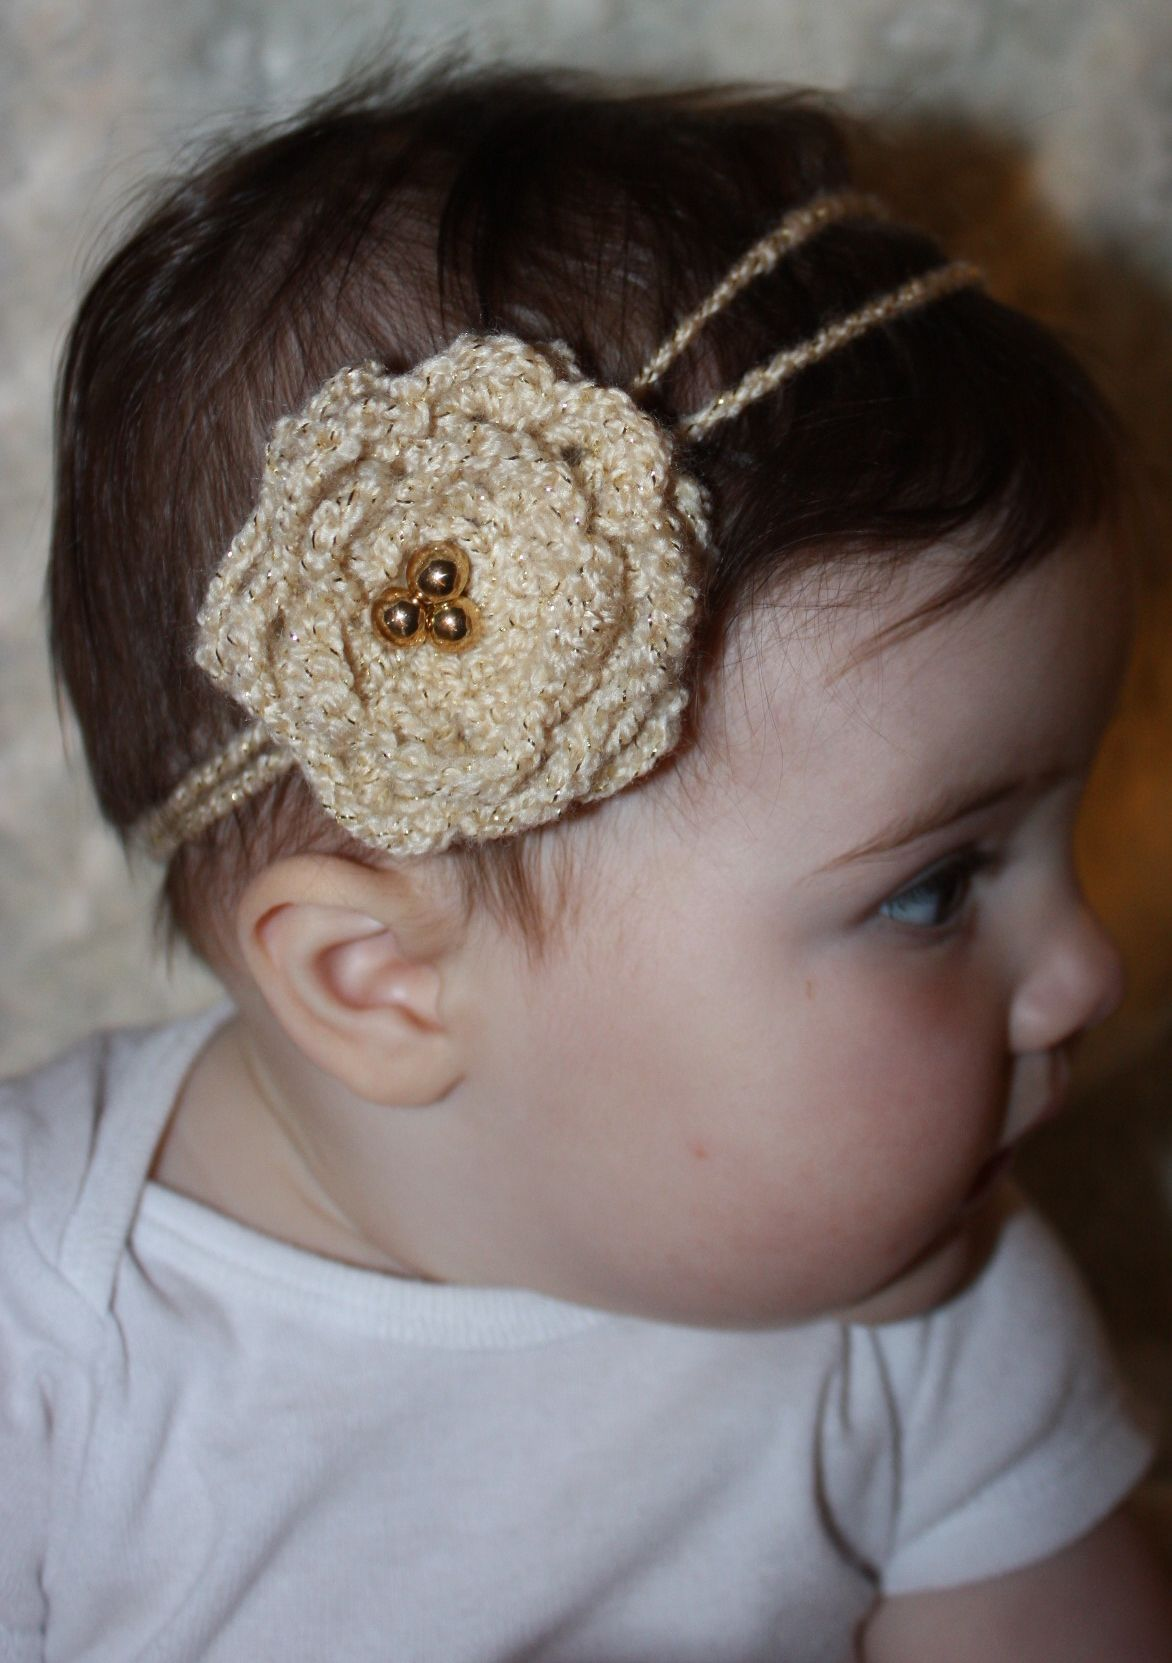 Baby Crocheted Headband | JoBi Accessories (www.jobiaccessories.etsy ...